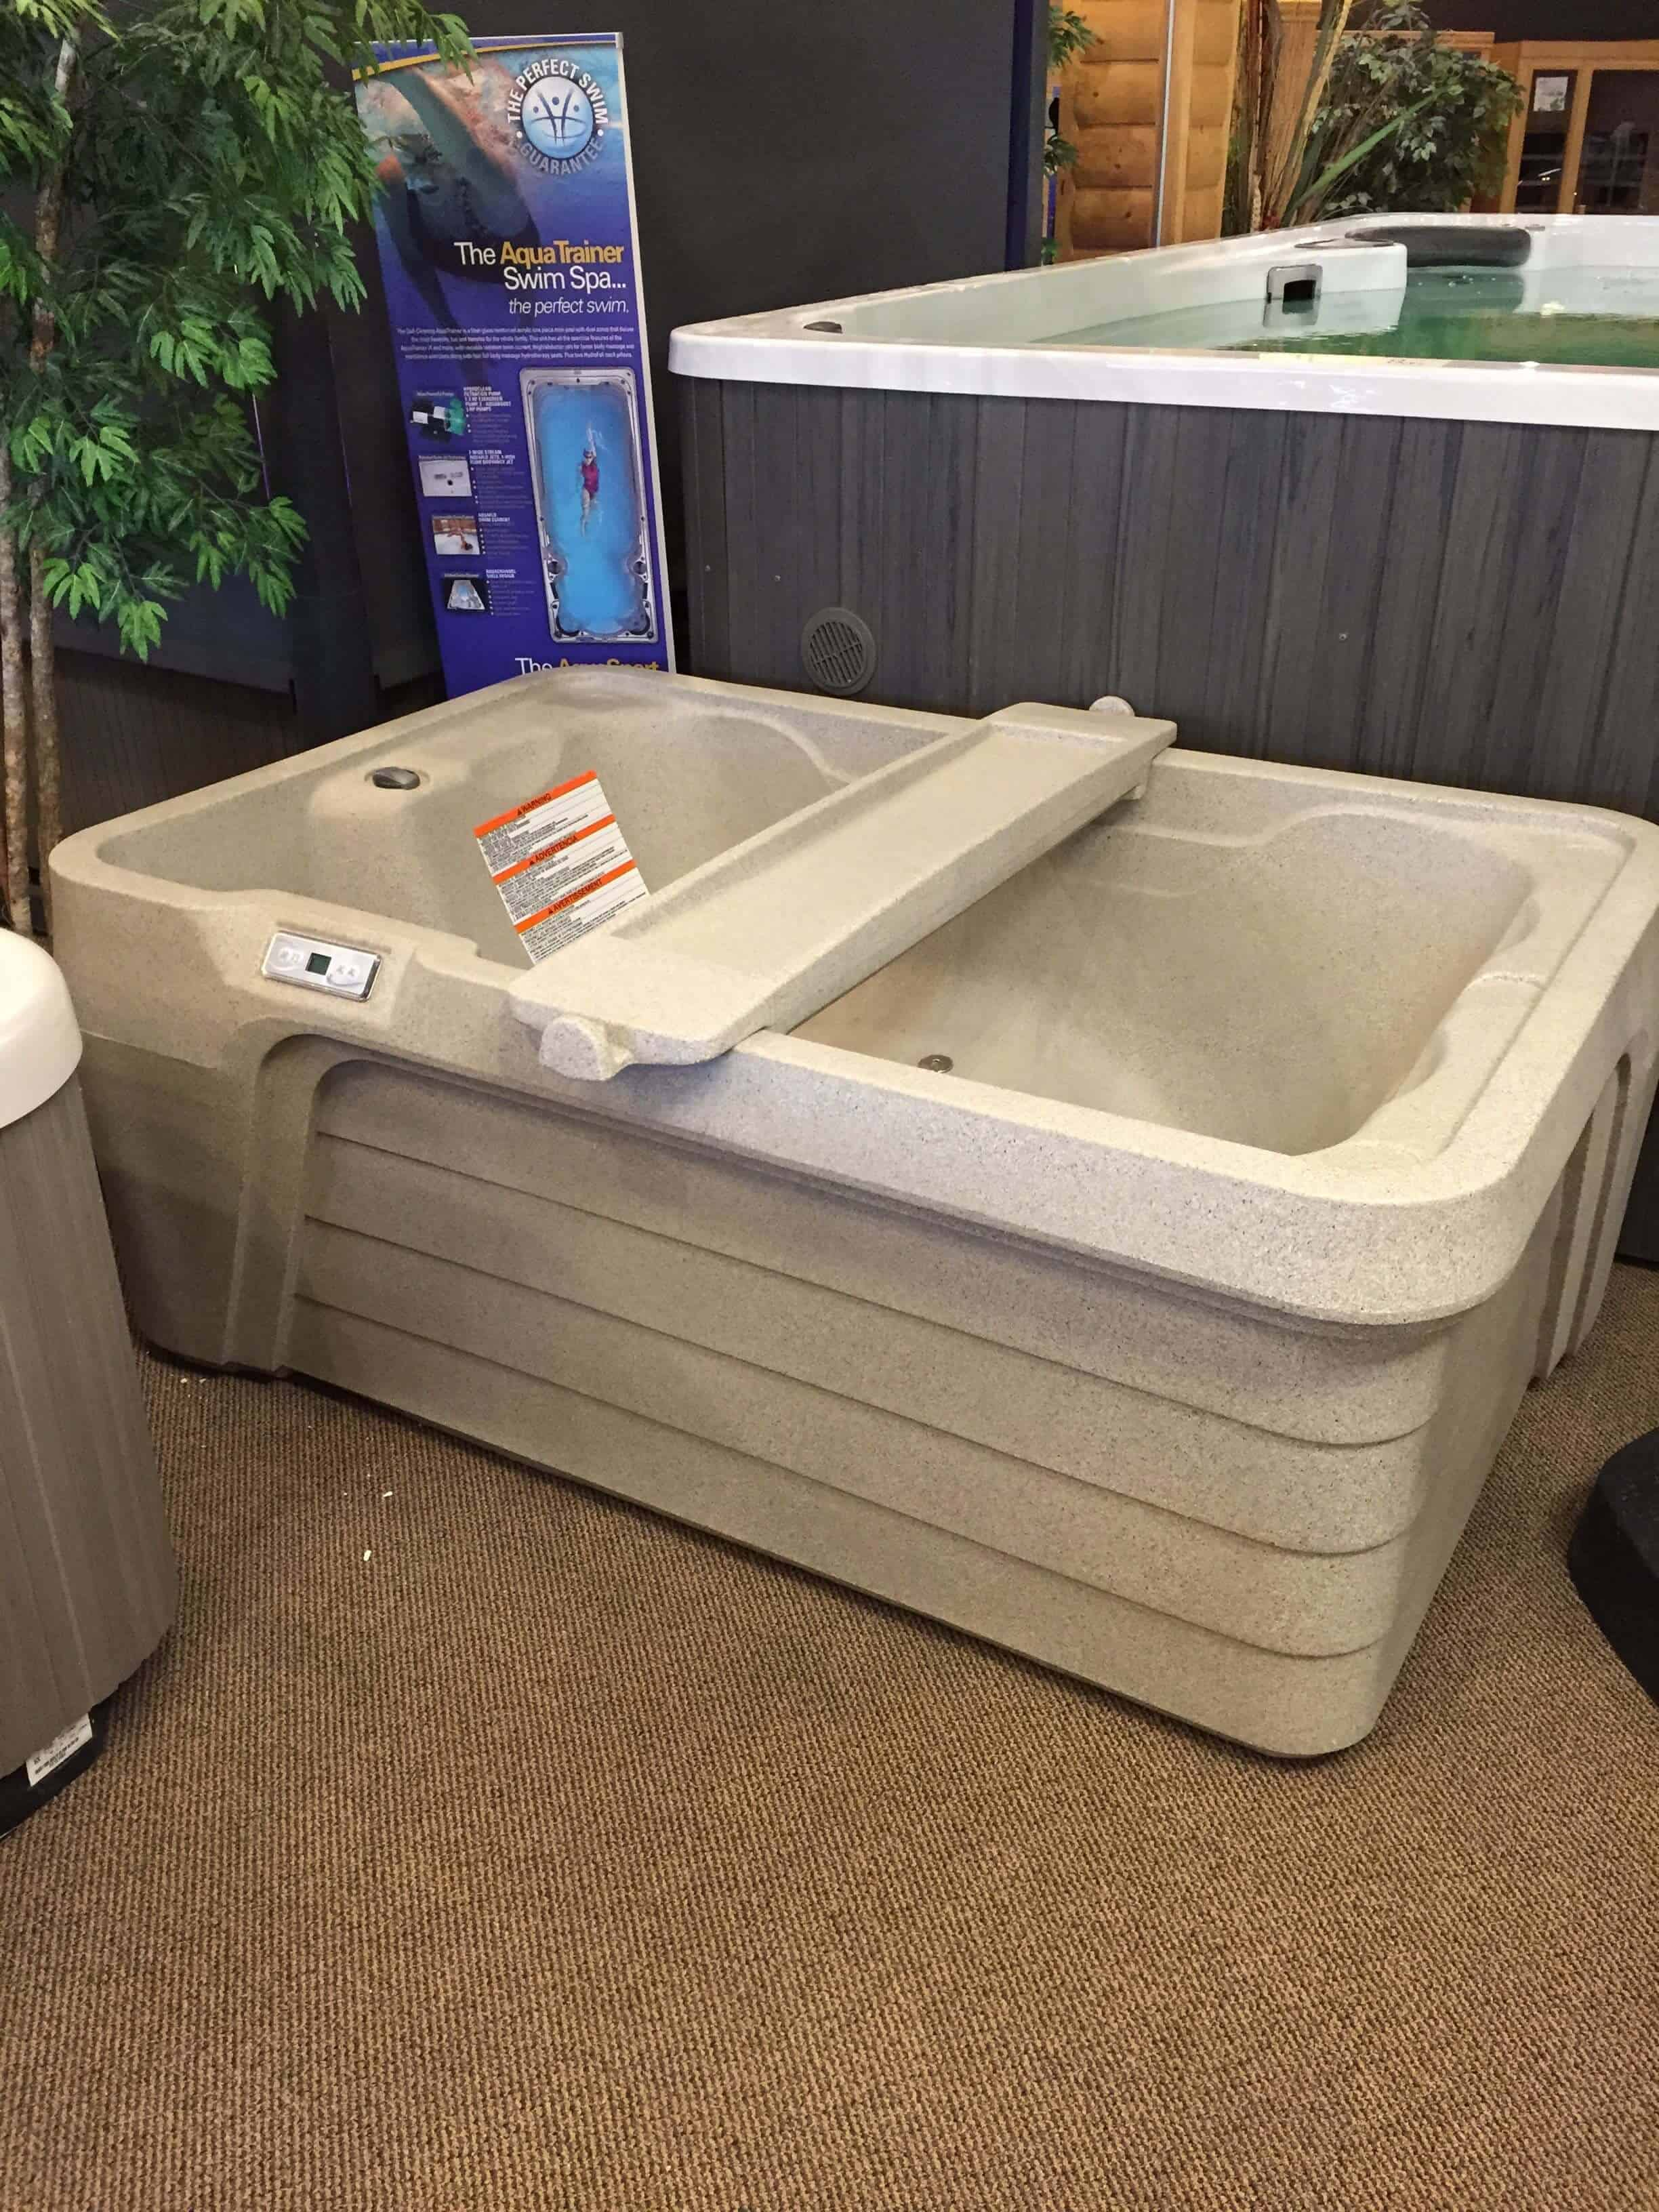 how much does a pedicure chair cost revolving thames 2 person hot tub in 2017 aide